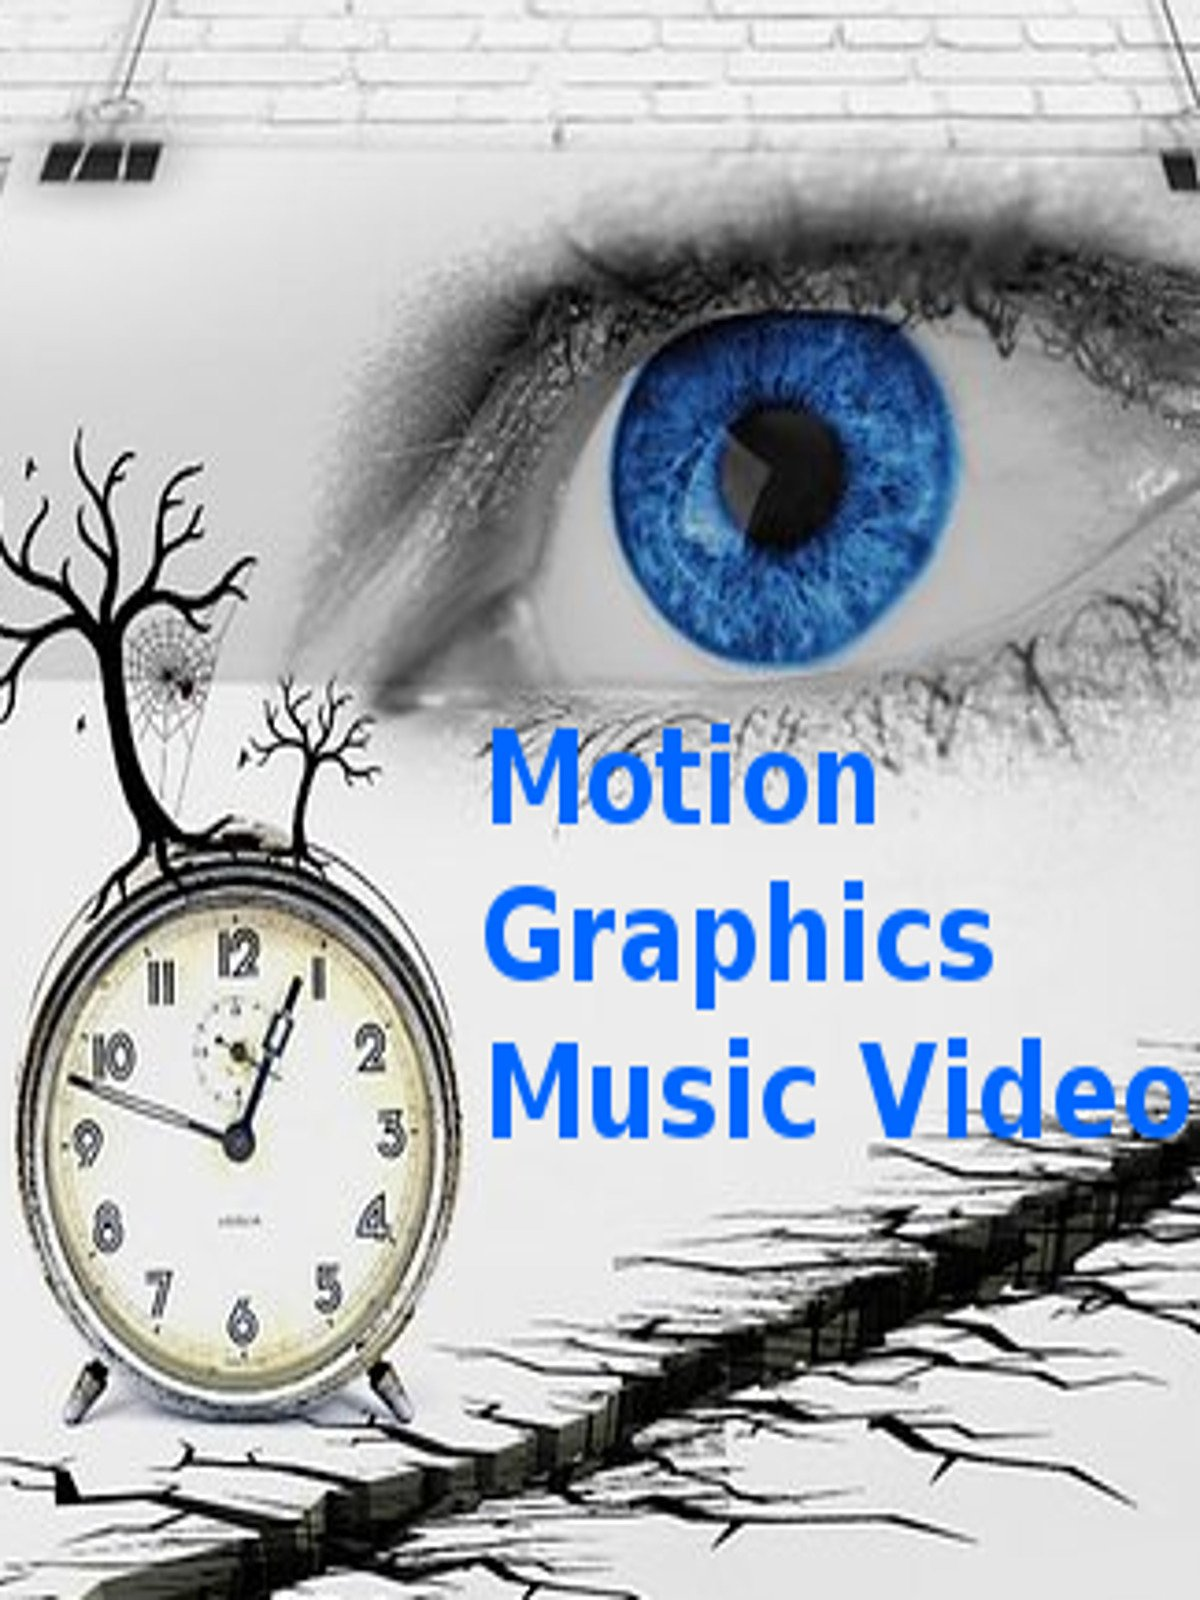 Clip: Motion Graphics Music Video